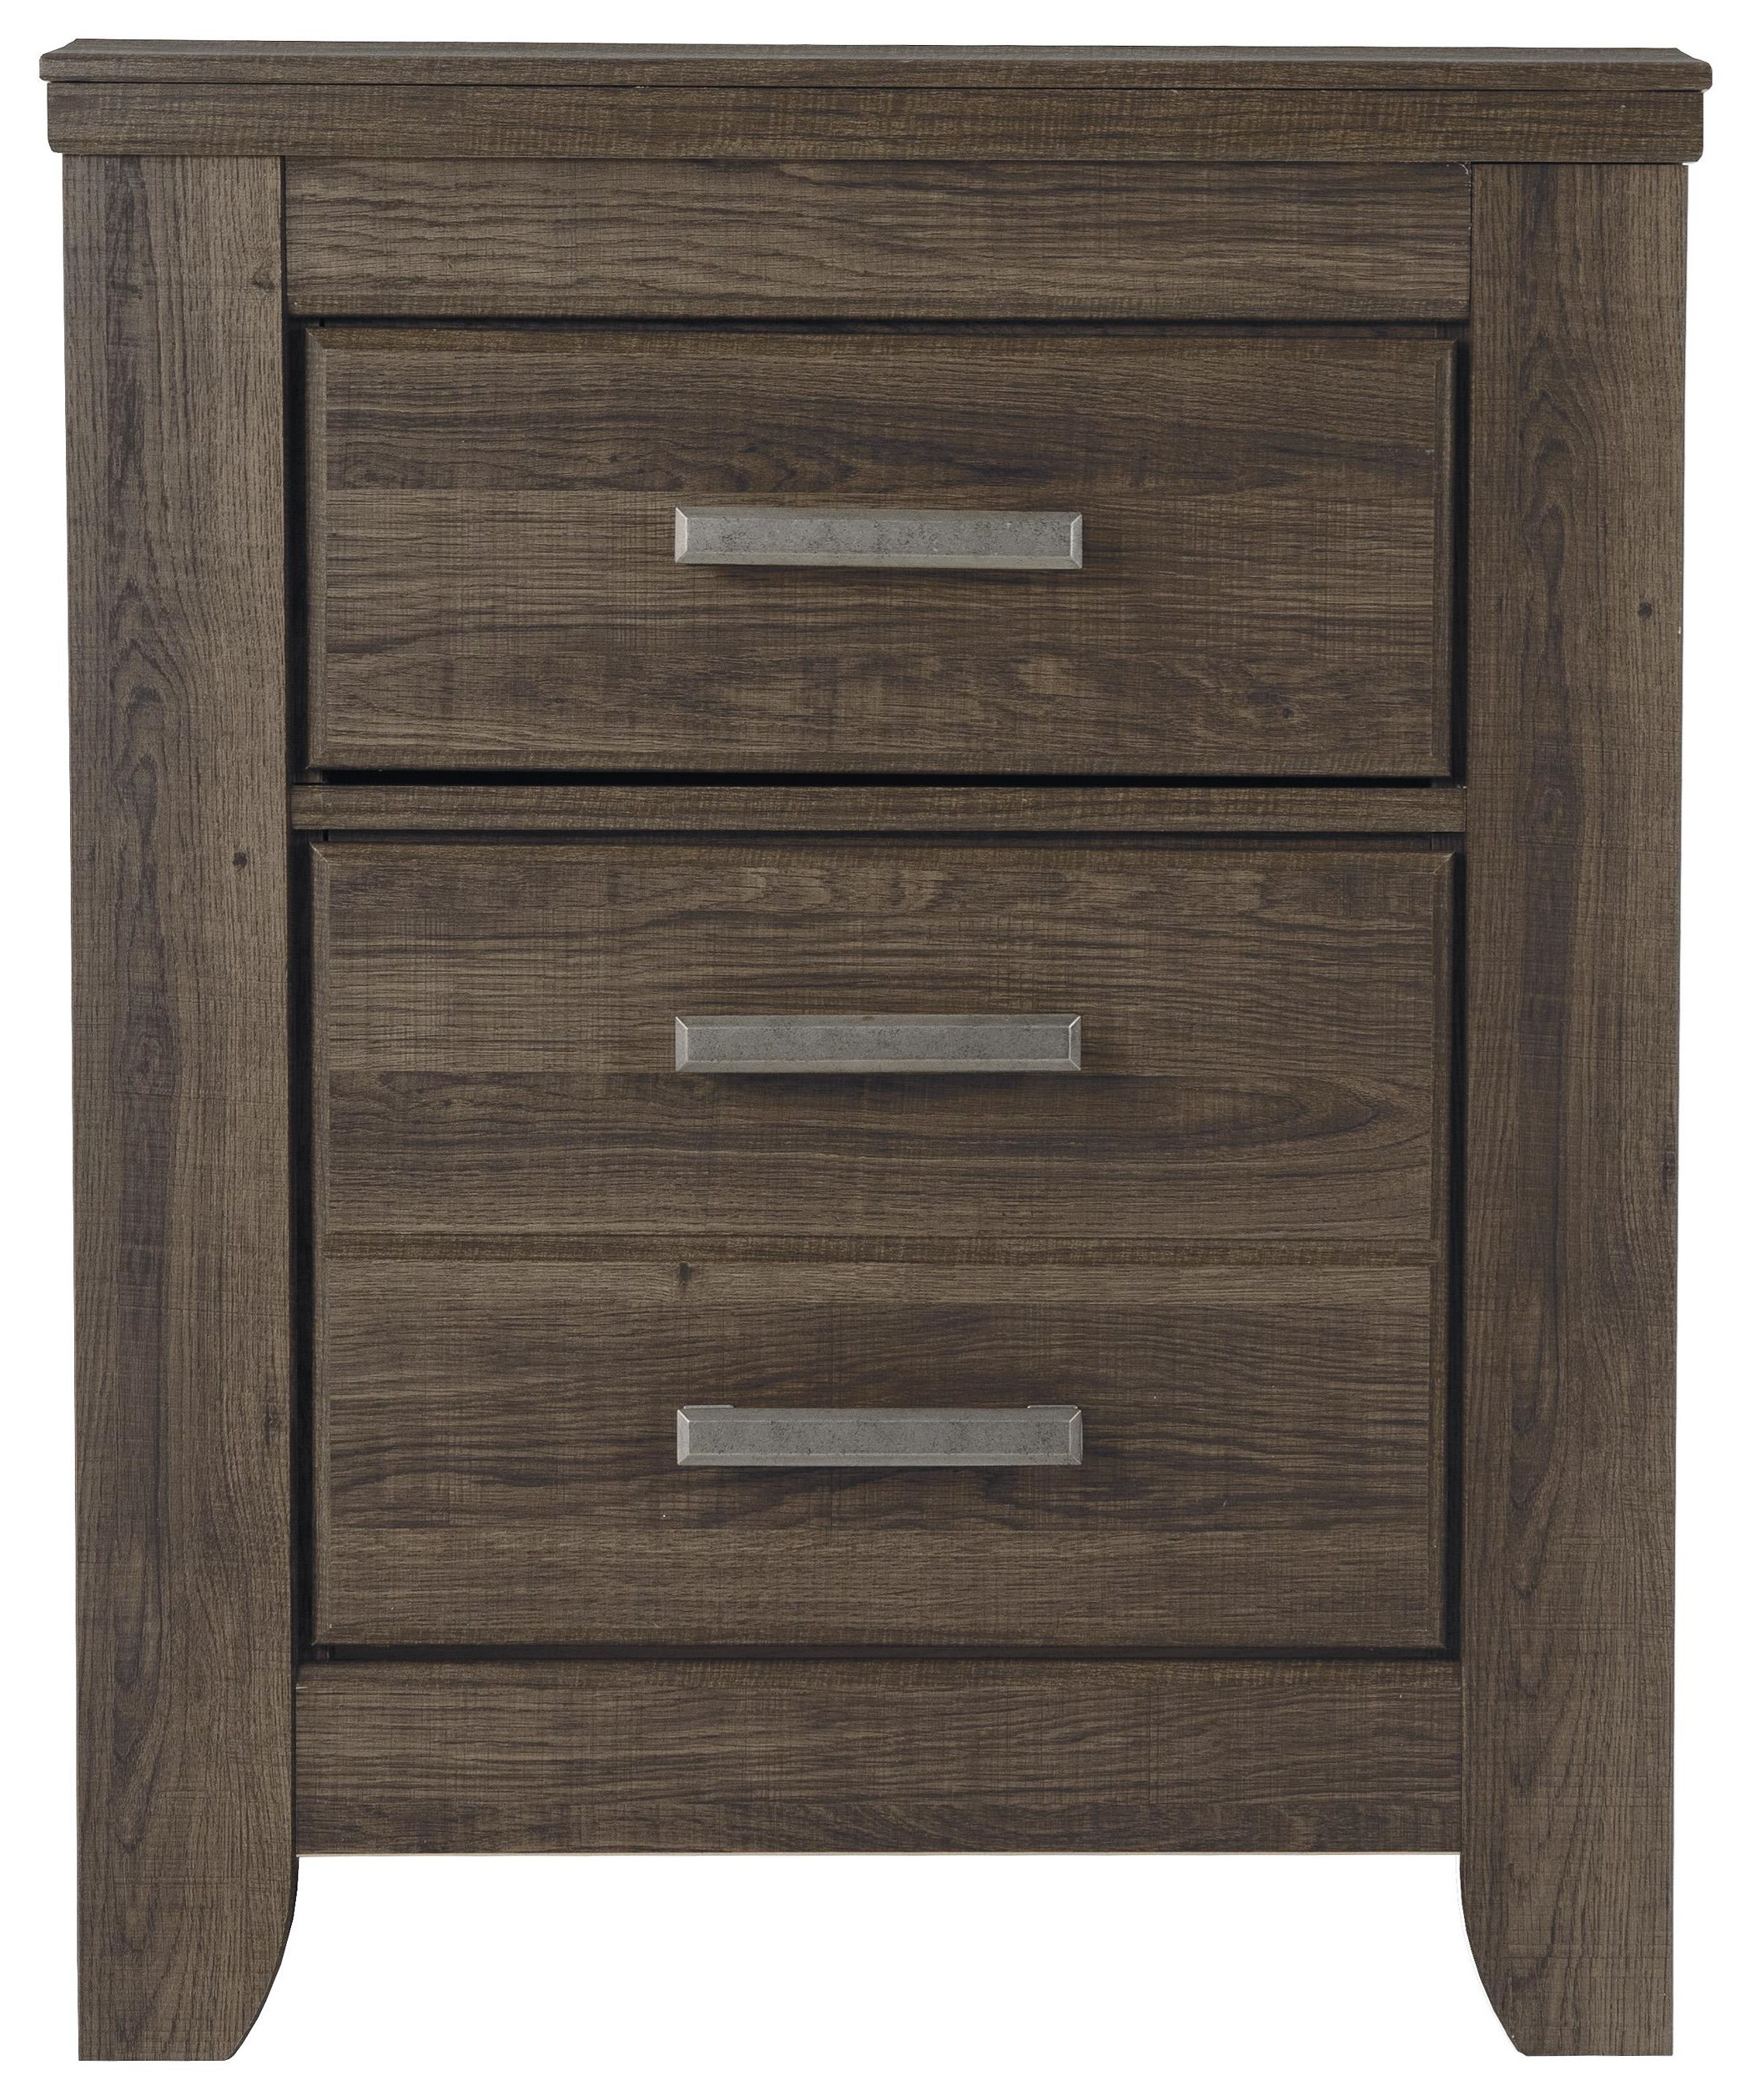 Juararo 2 Drawer Nightstand by Signature Design by Ashley at HomeWorld Furniture